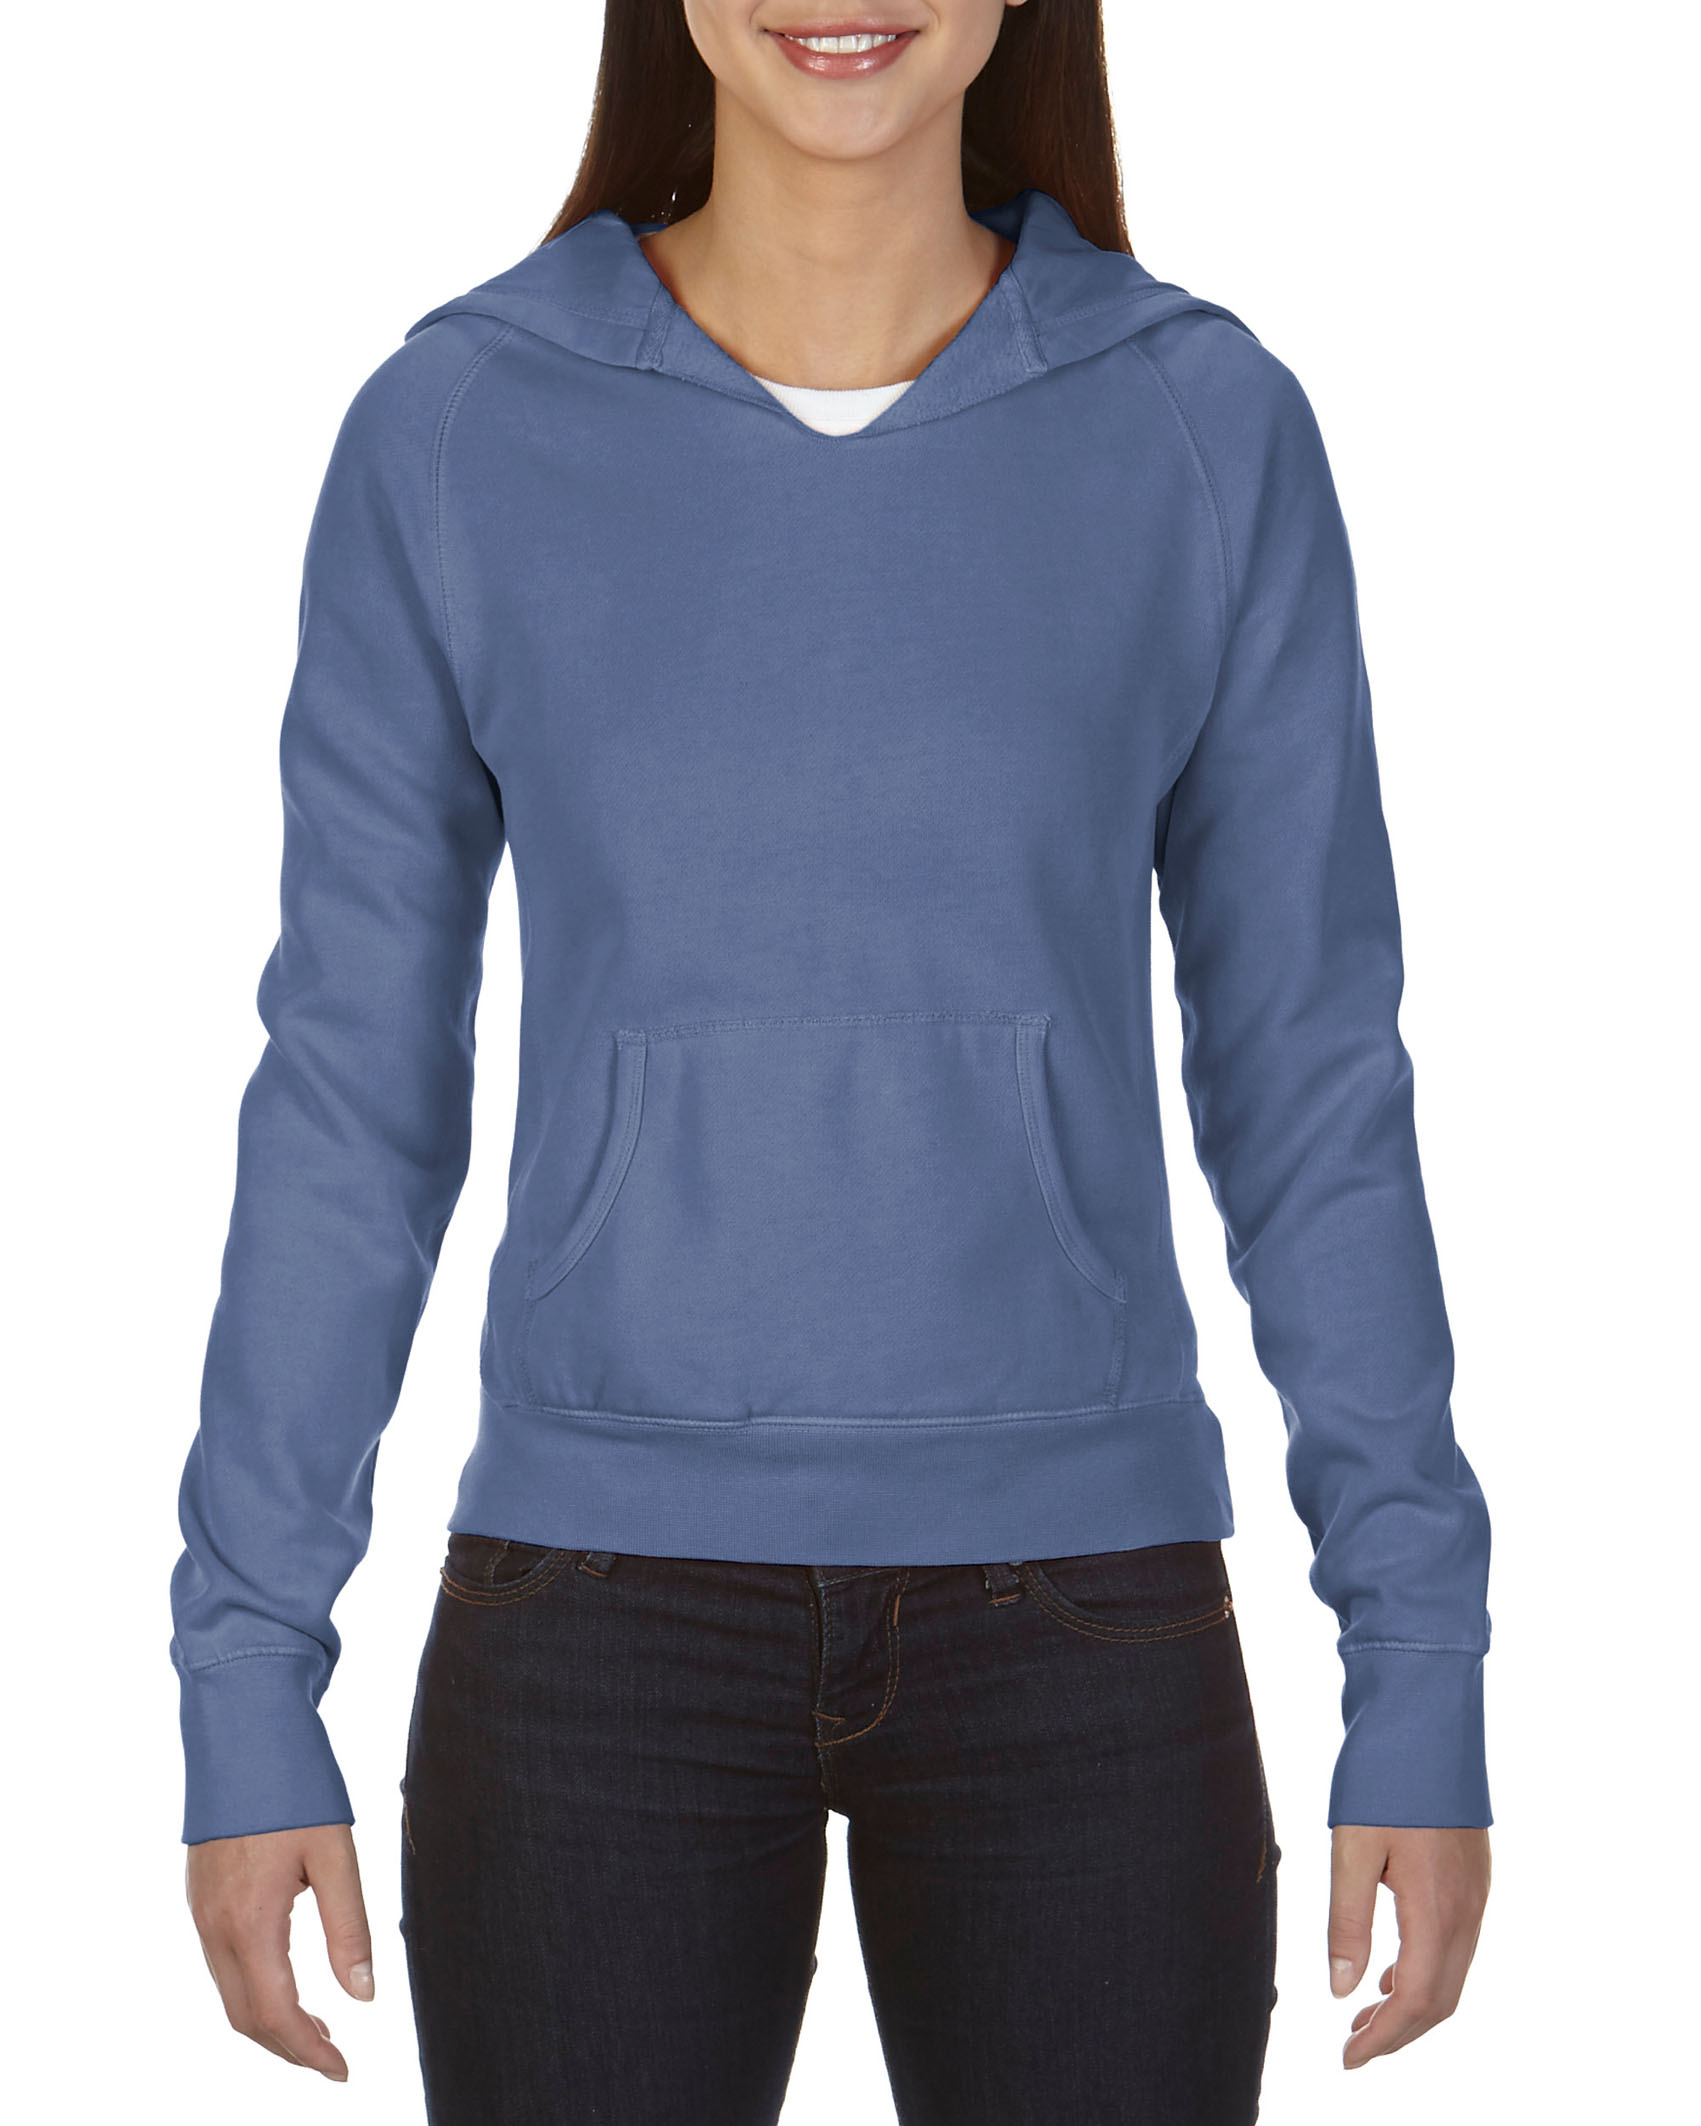 ComCol Hooded Sweatshirt for her